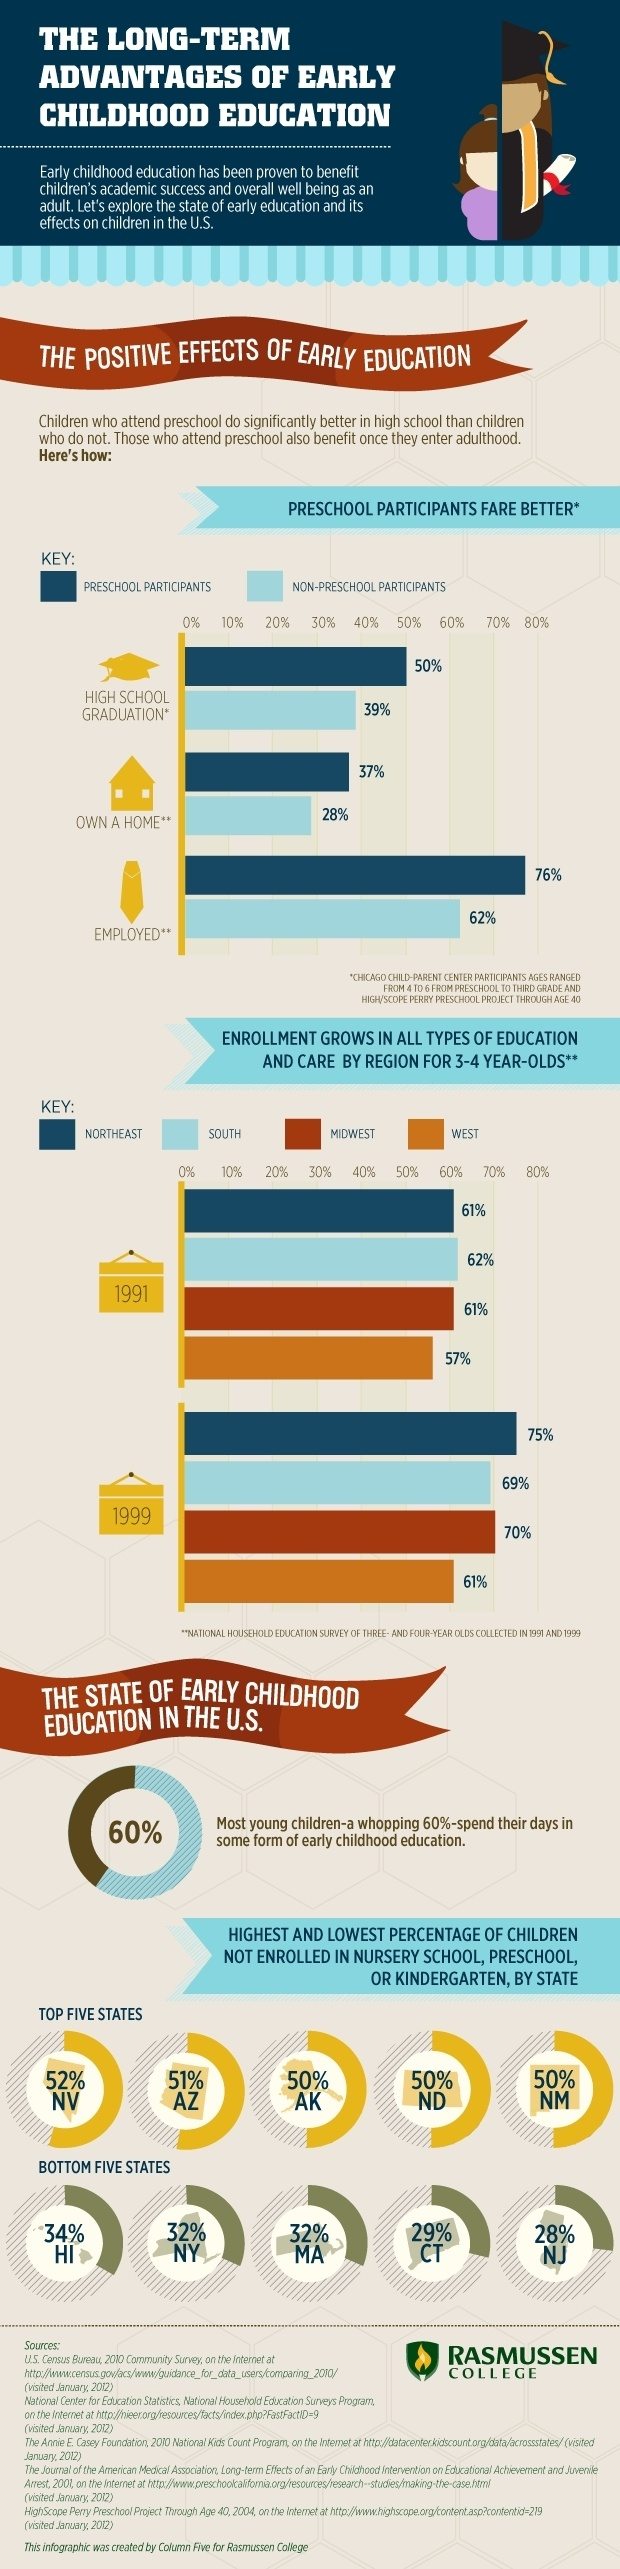 Advantages of Early Childhood Education Infographic